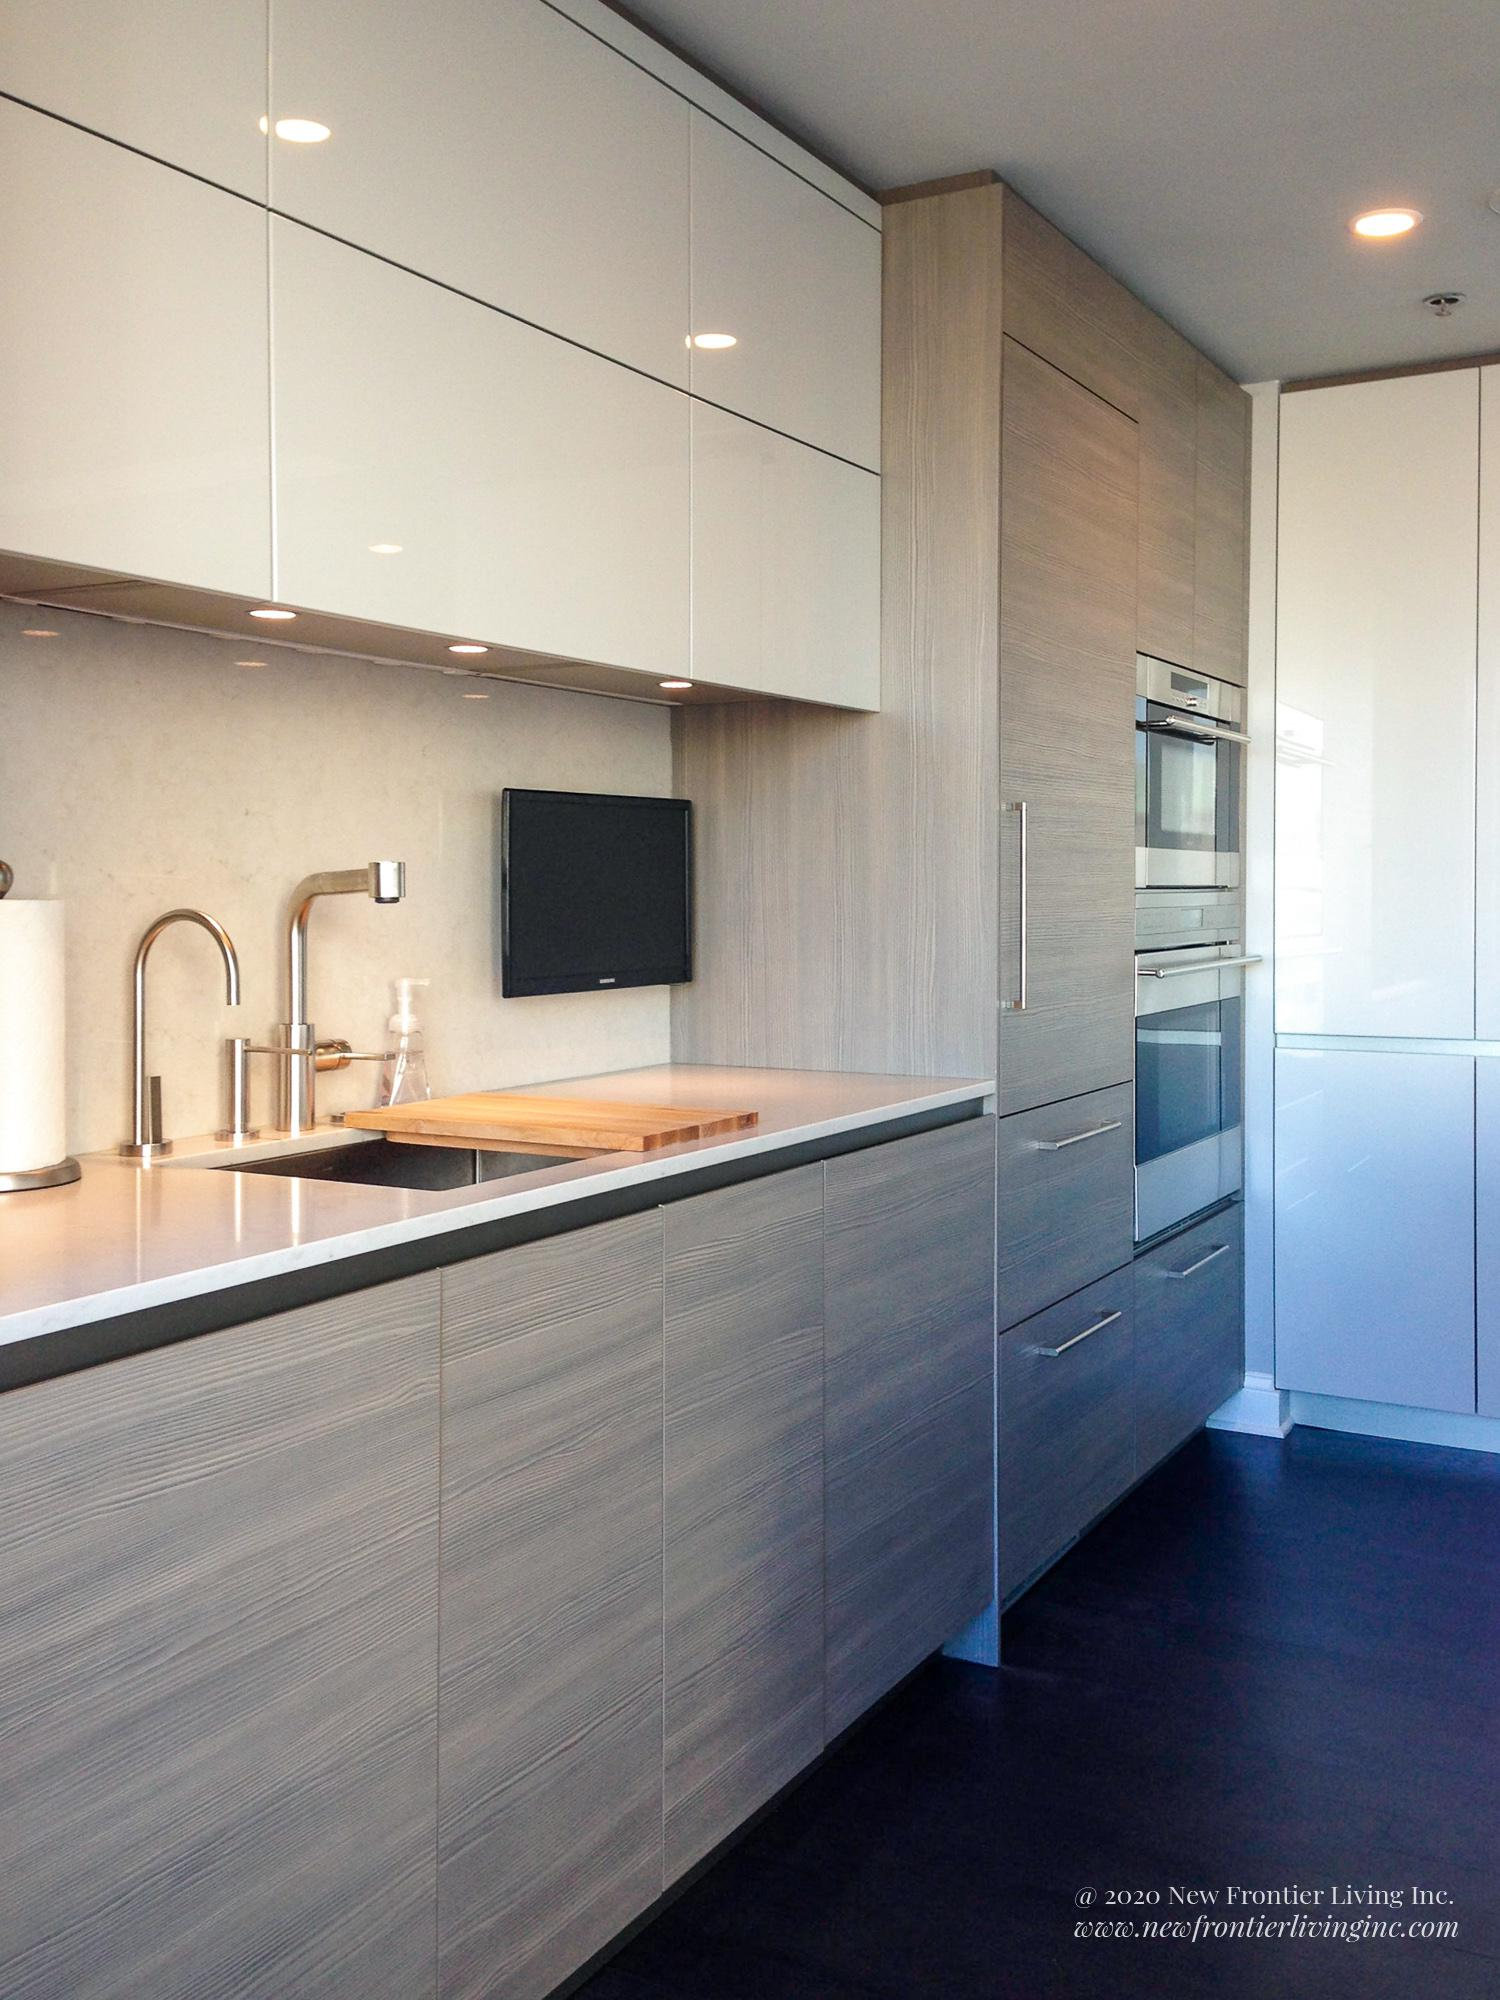 Light wood kitchen cabinetry with limited silver handles